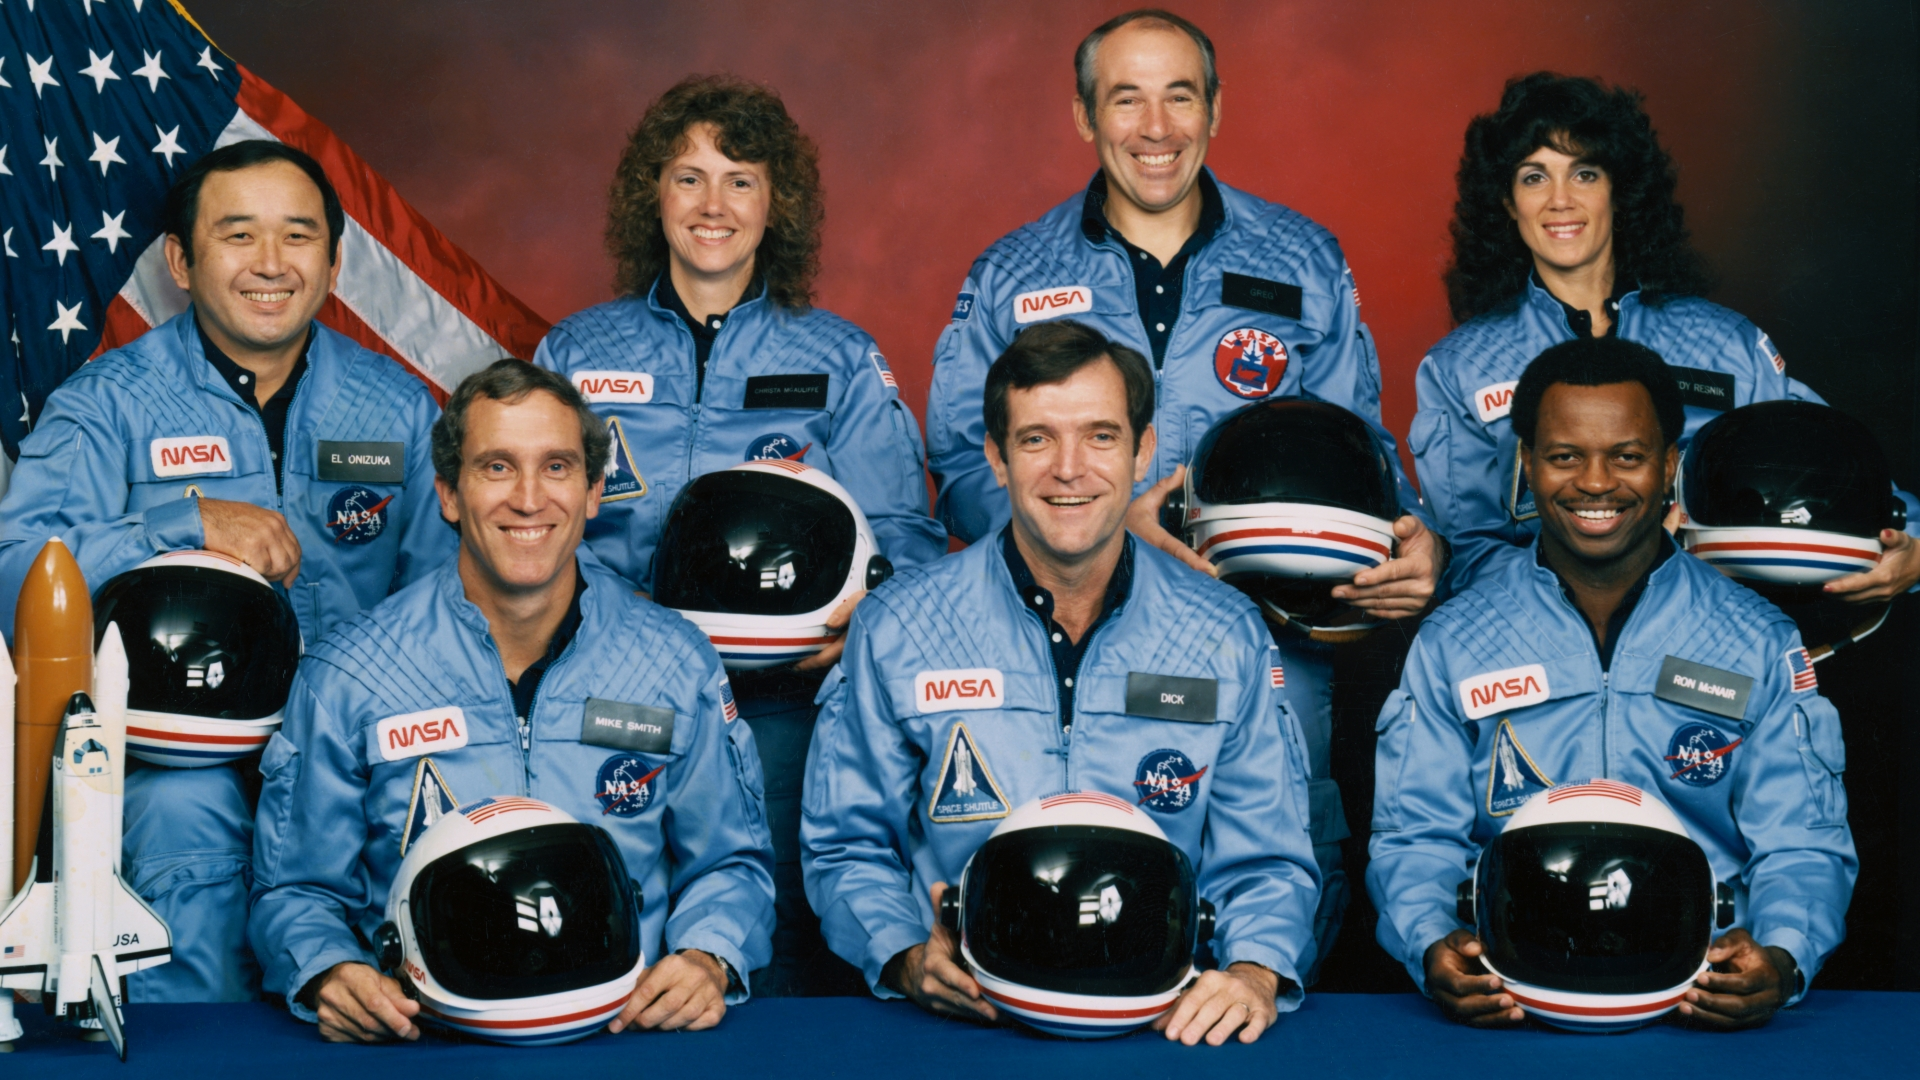 space shuttle challenger 1986 - photo #13